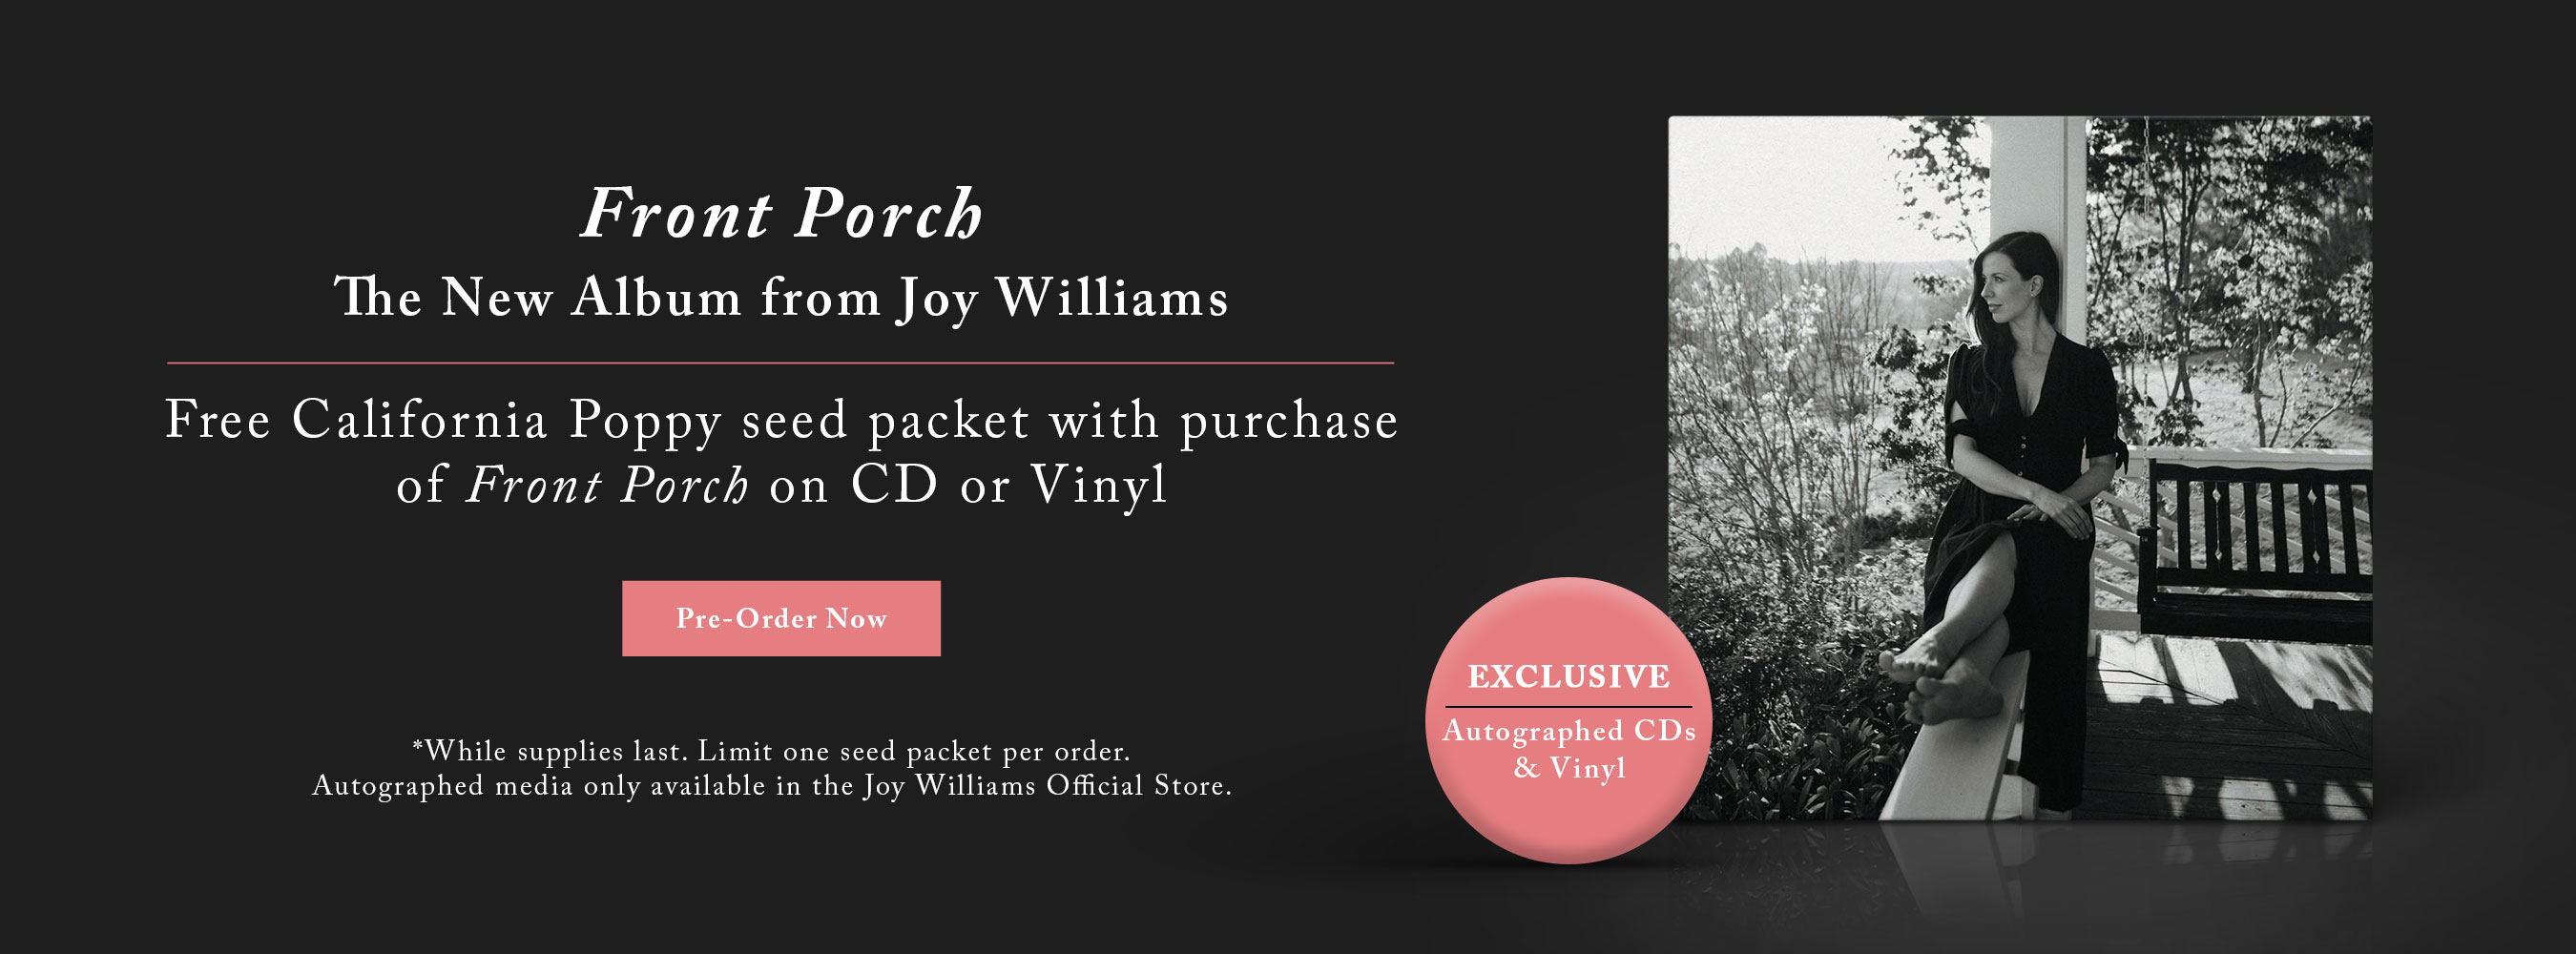 Pre-Order Front Porch Today